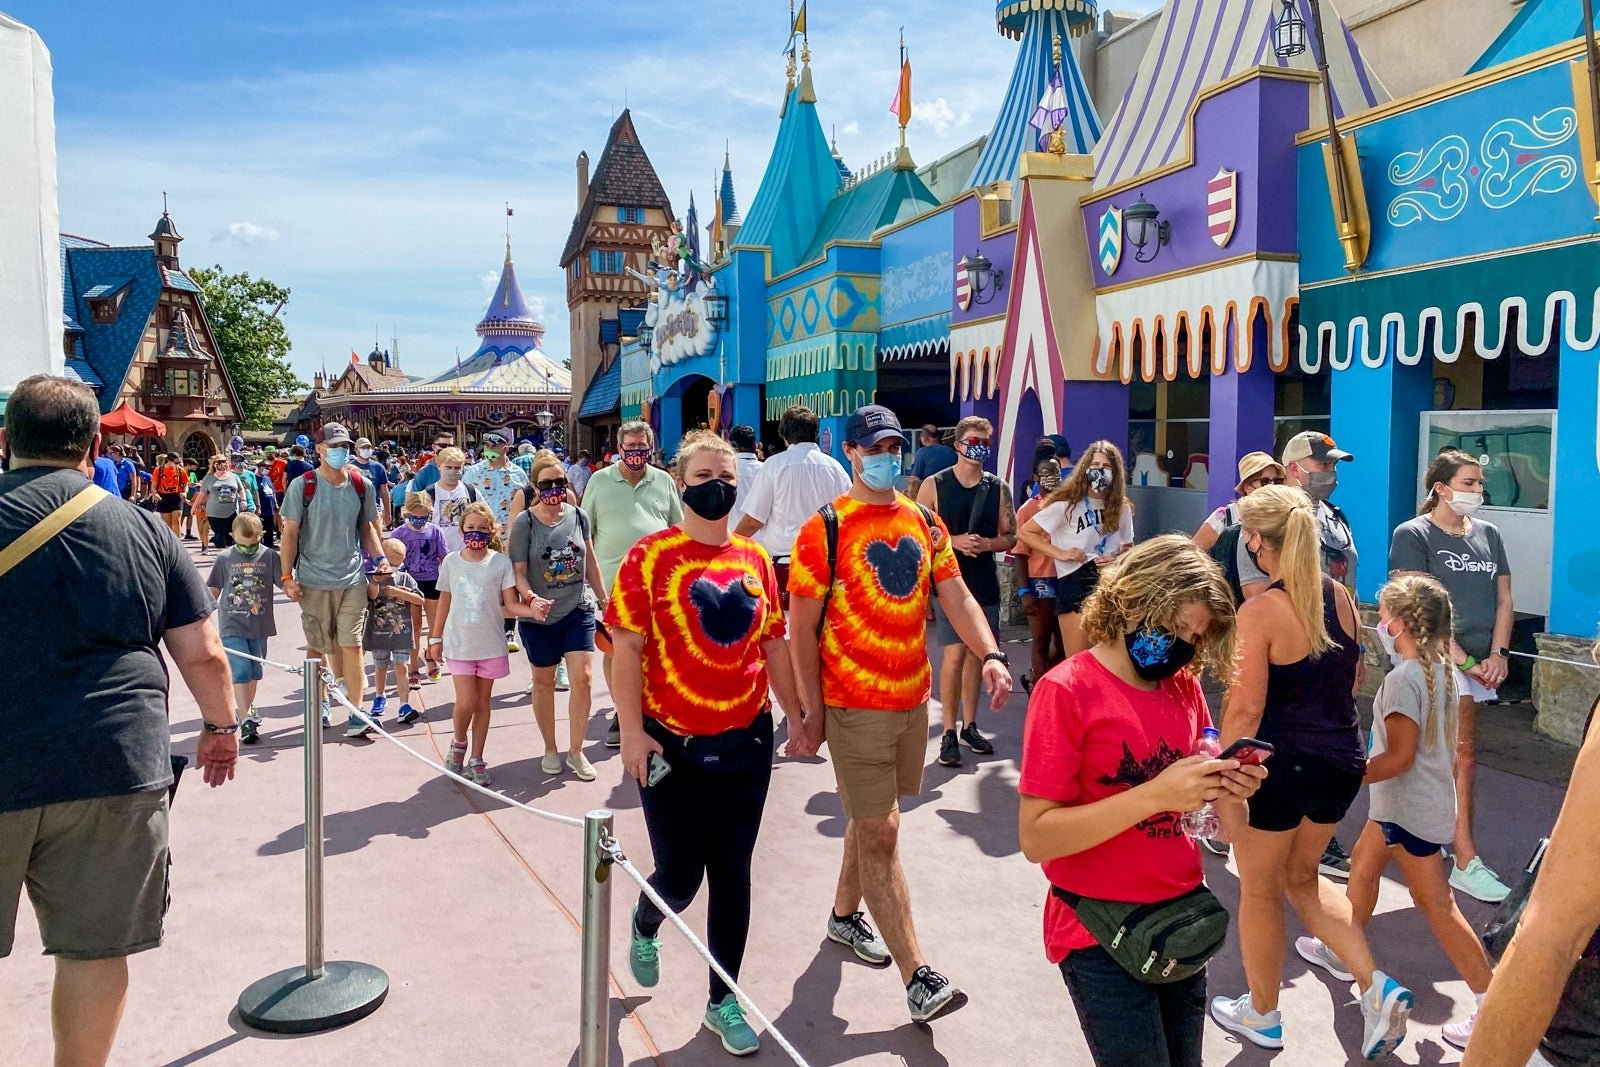 Theme Park Fans Rejoice: Parks Are Reopening and Mask Mandates Are Being Lifted